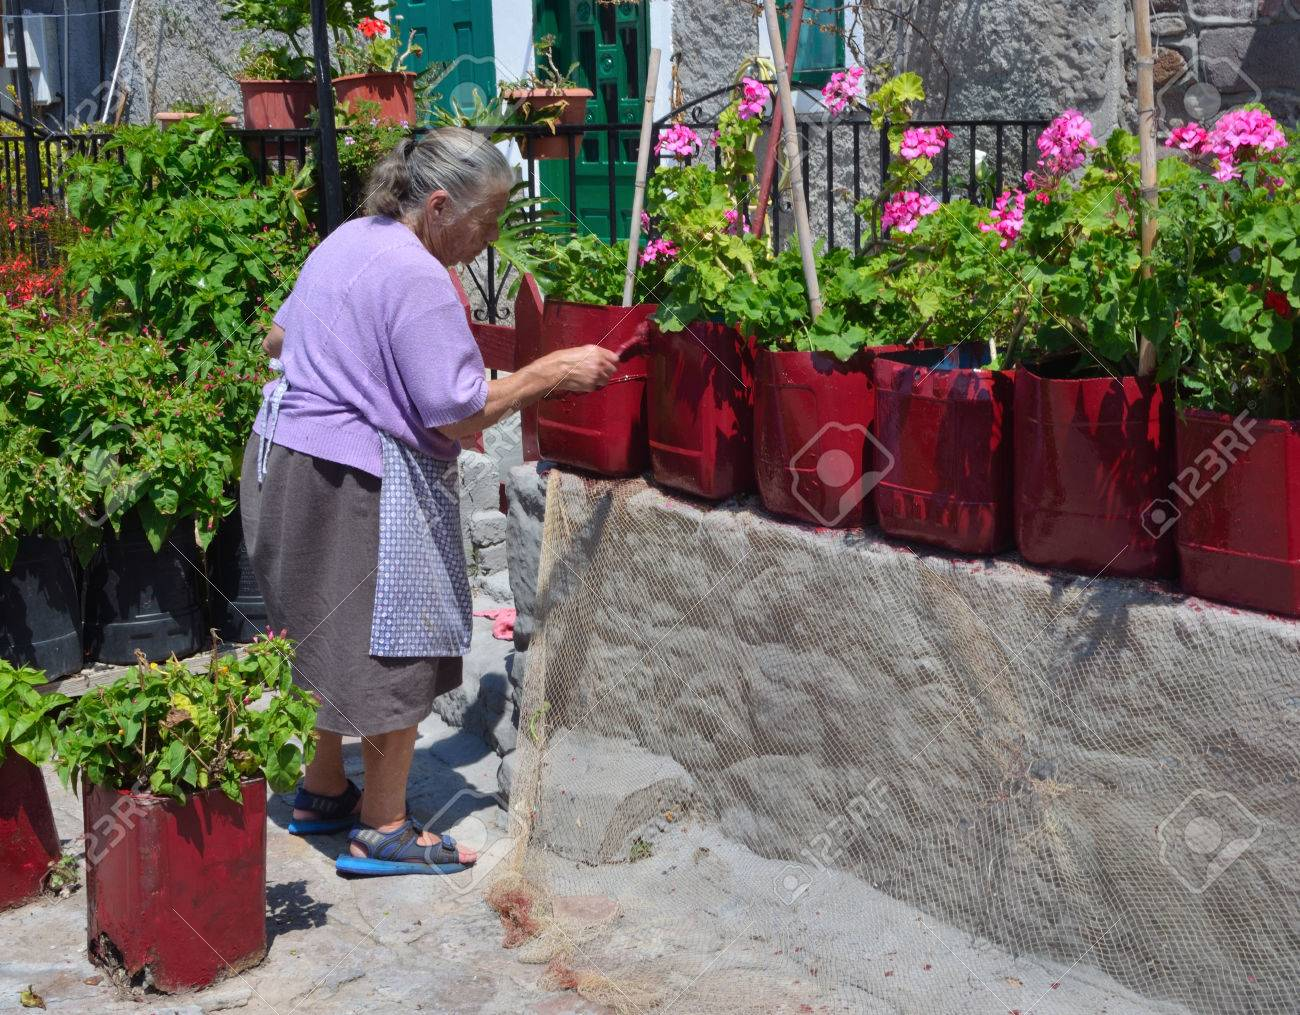 Old greek lady painting plastic plant pots. Stock Photo - 60445406 & Old Greek Lady Painting Plastic Plant Pots. Stock Photo Picture And ...